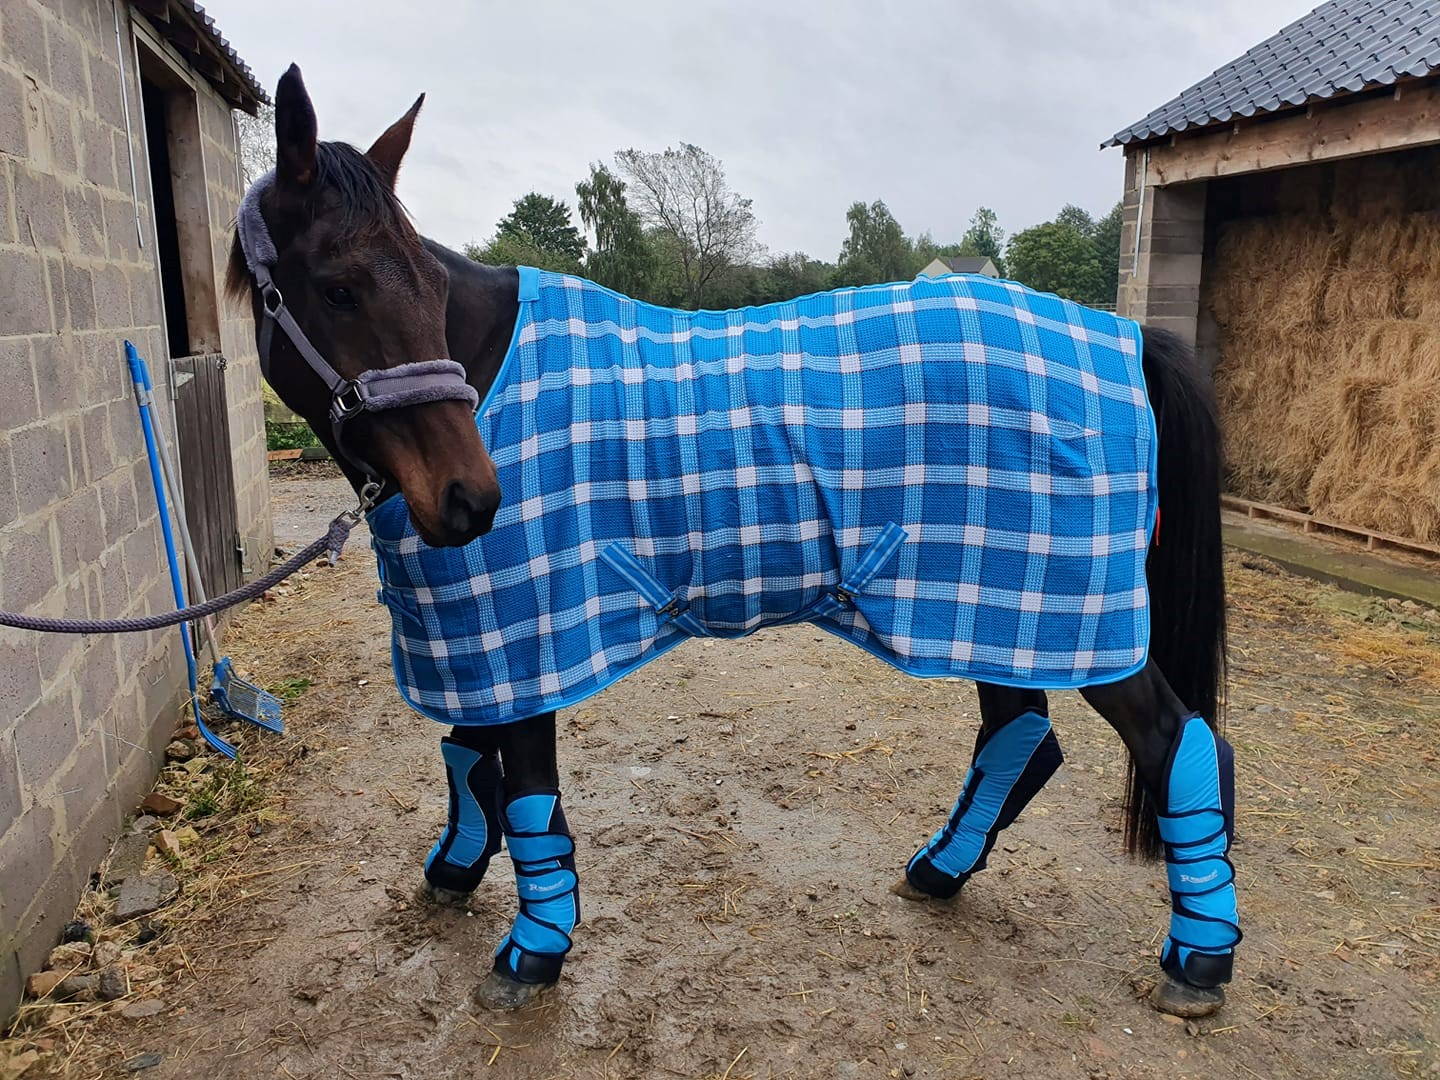 A horse with a blue patterned rug on outside its stables